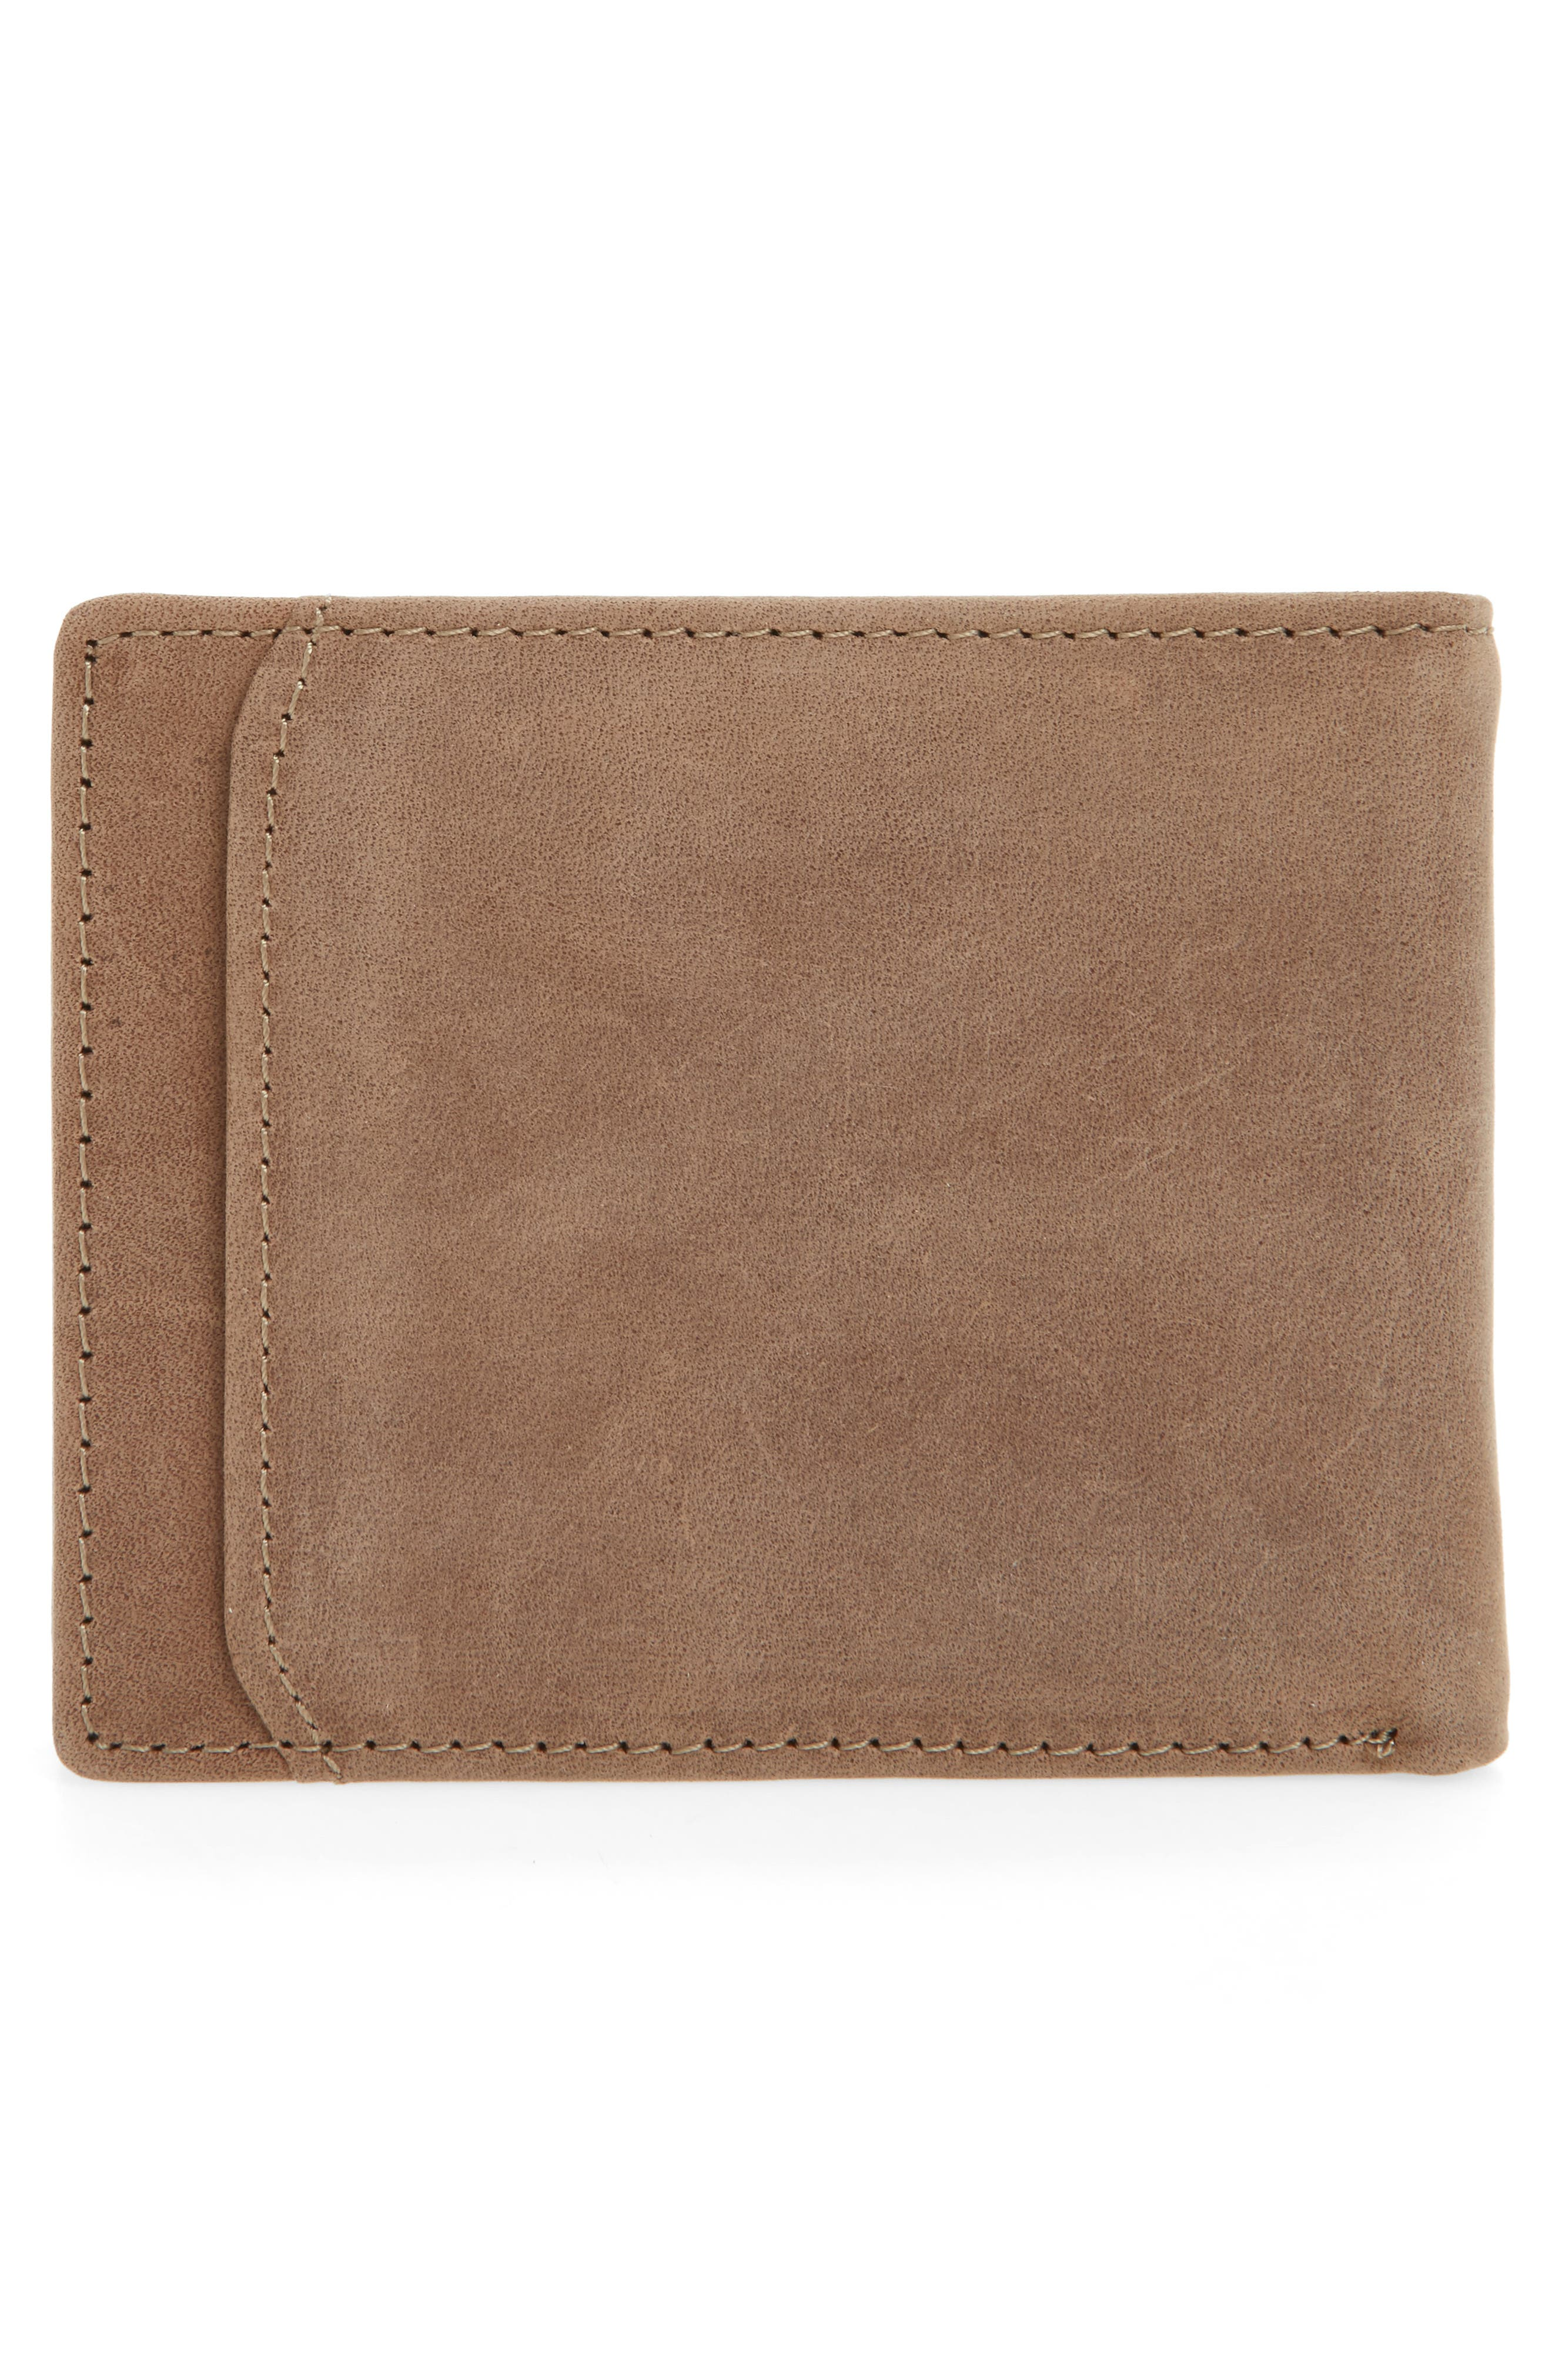 Upton Leather Wallet,                             Alternate thumbnail 3, color,